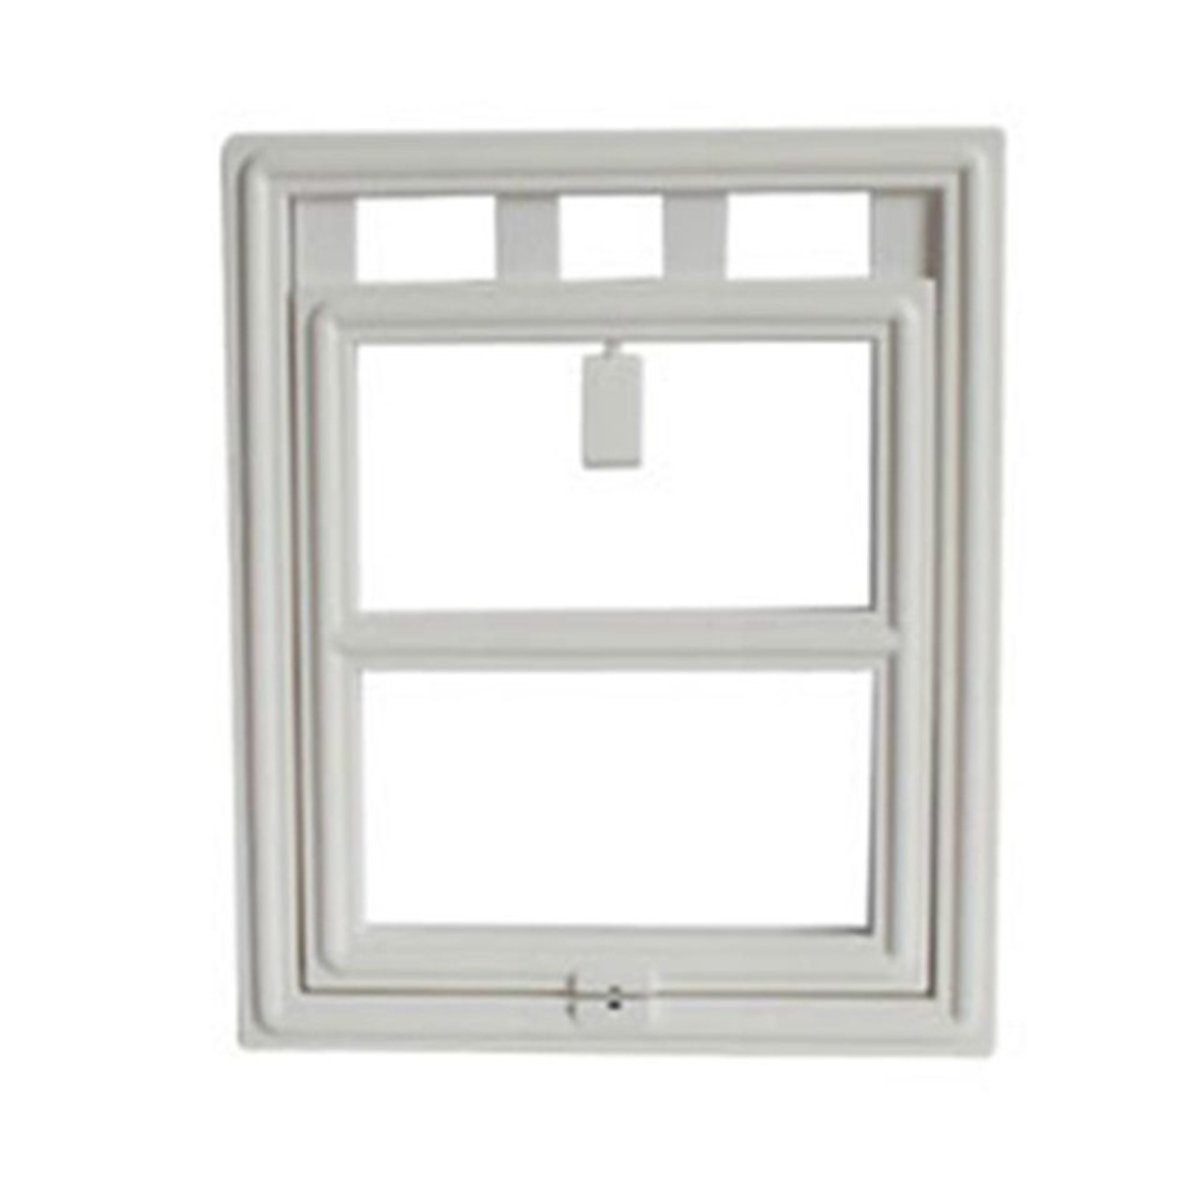 yIFeNG Pet Screen Door Dog Cat Flap With Magnetic Automatic Lock (Small, White)